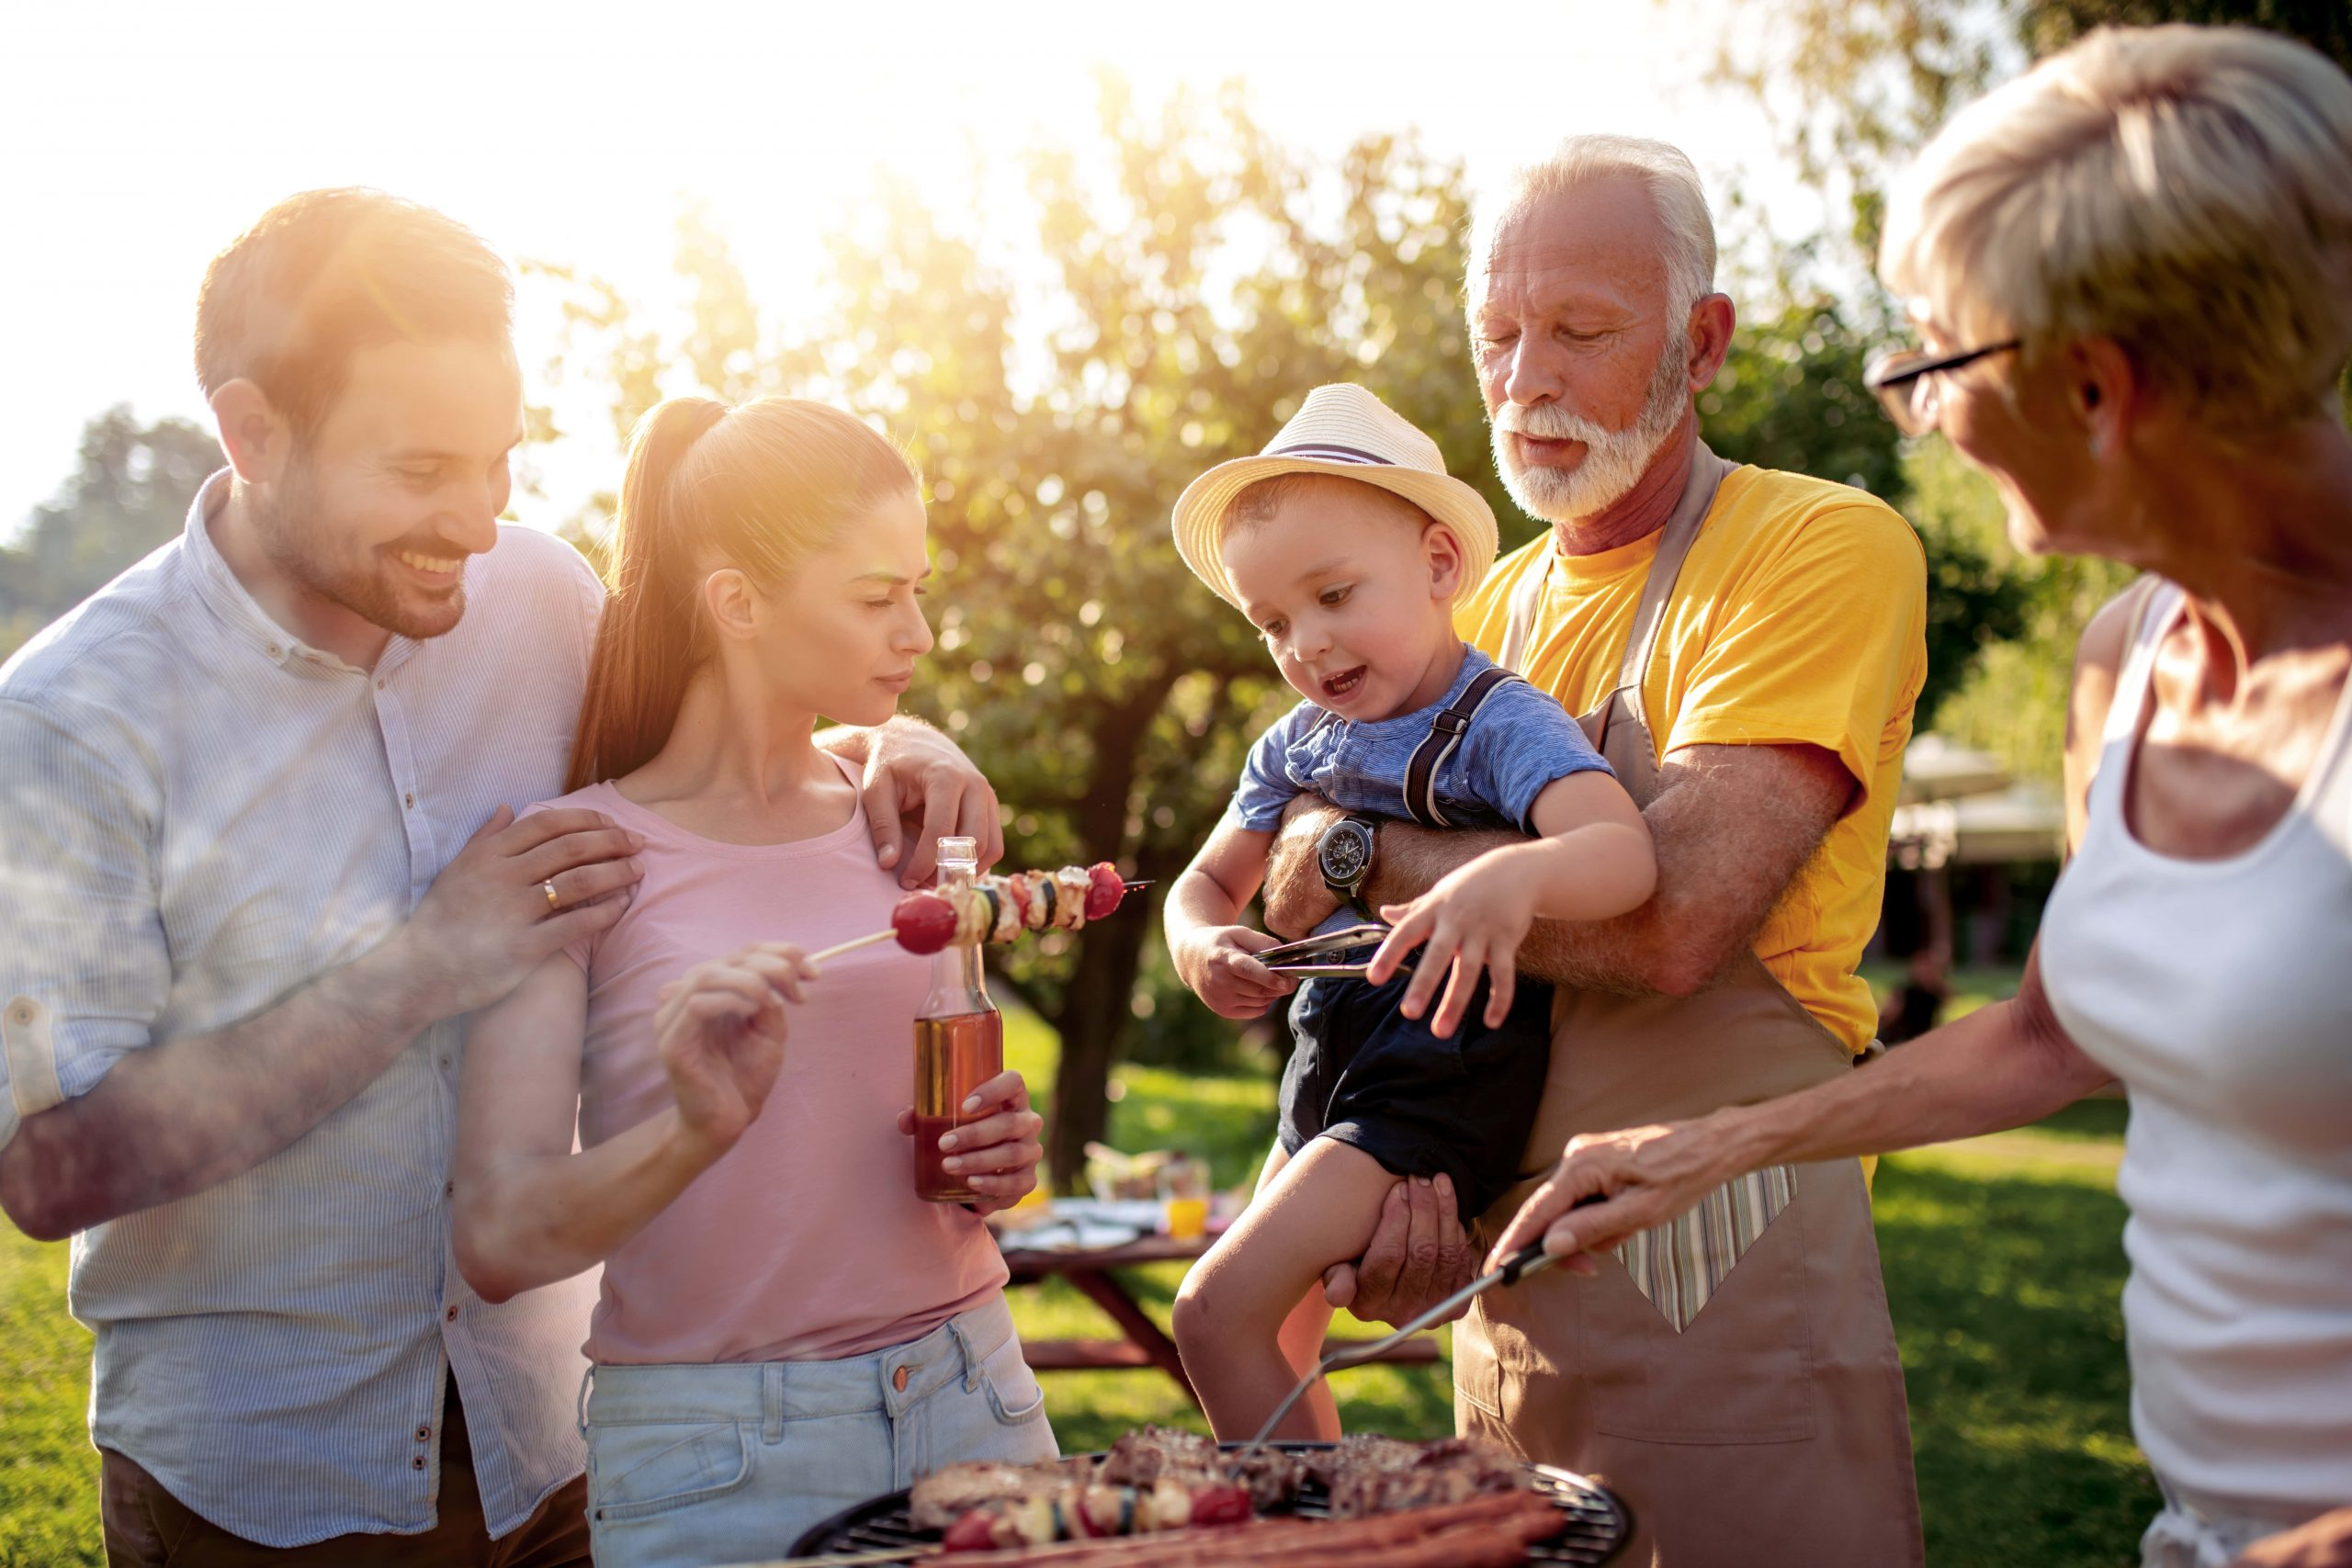 Report On The Economic Well Being Of U.s. Households In 2019